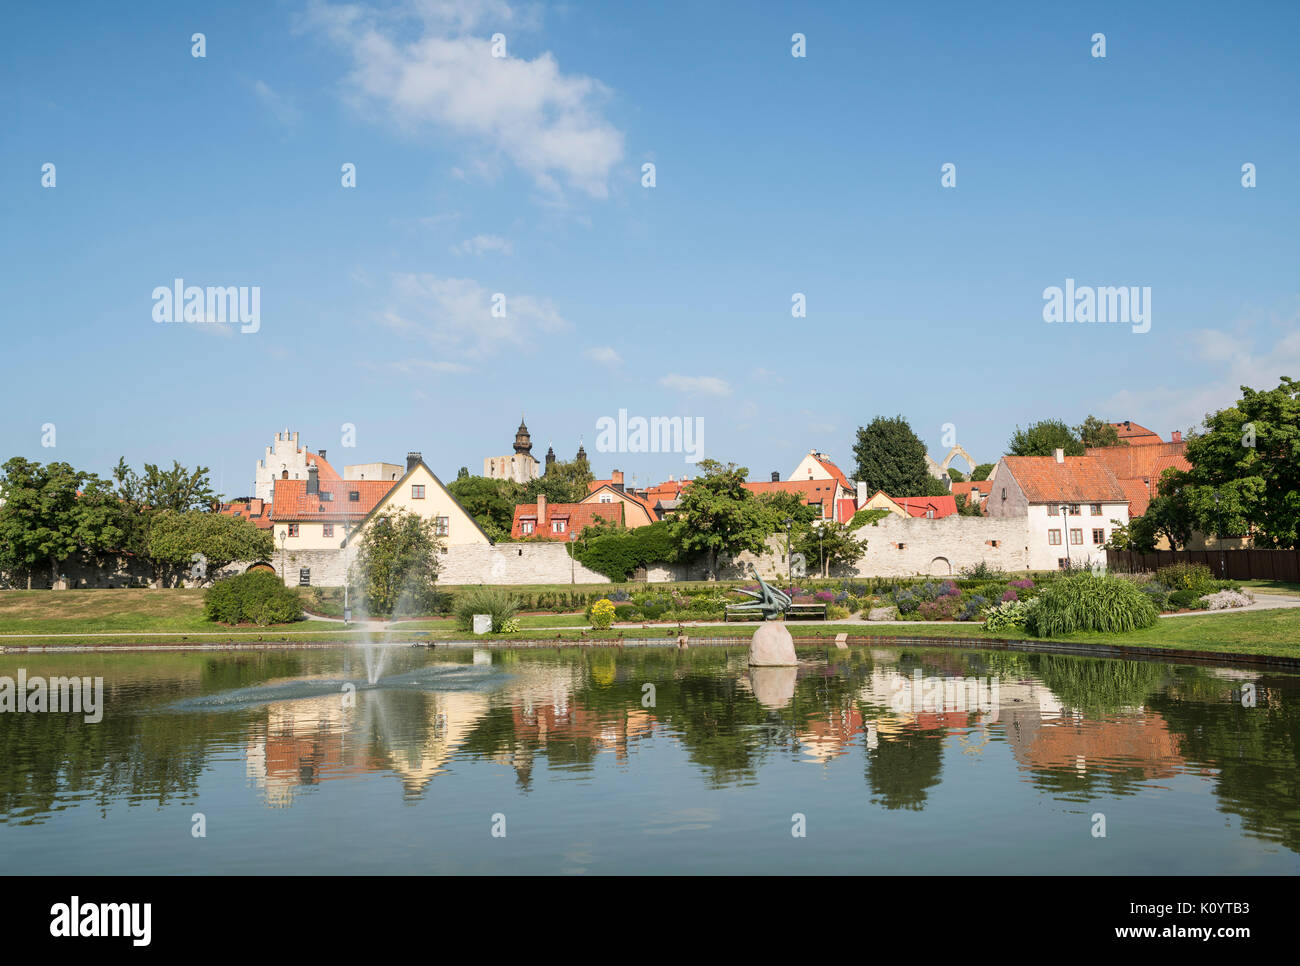 Pond in the Almedalen Park in Visby, Gotland, Sweden, Scandinavia. - Stock Image